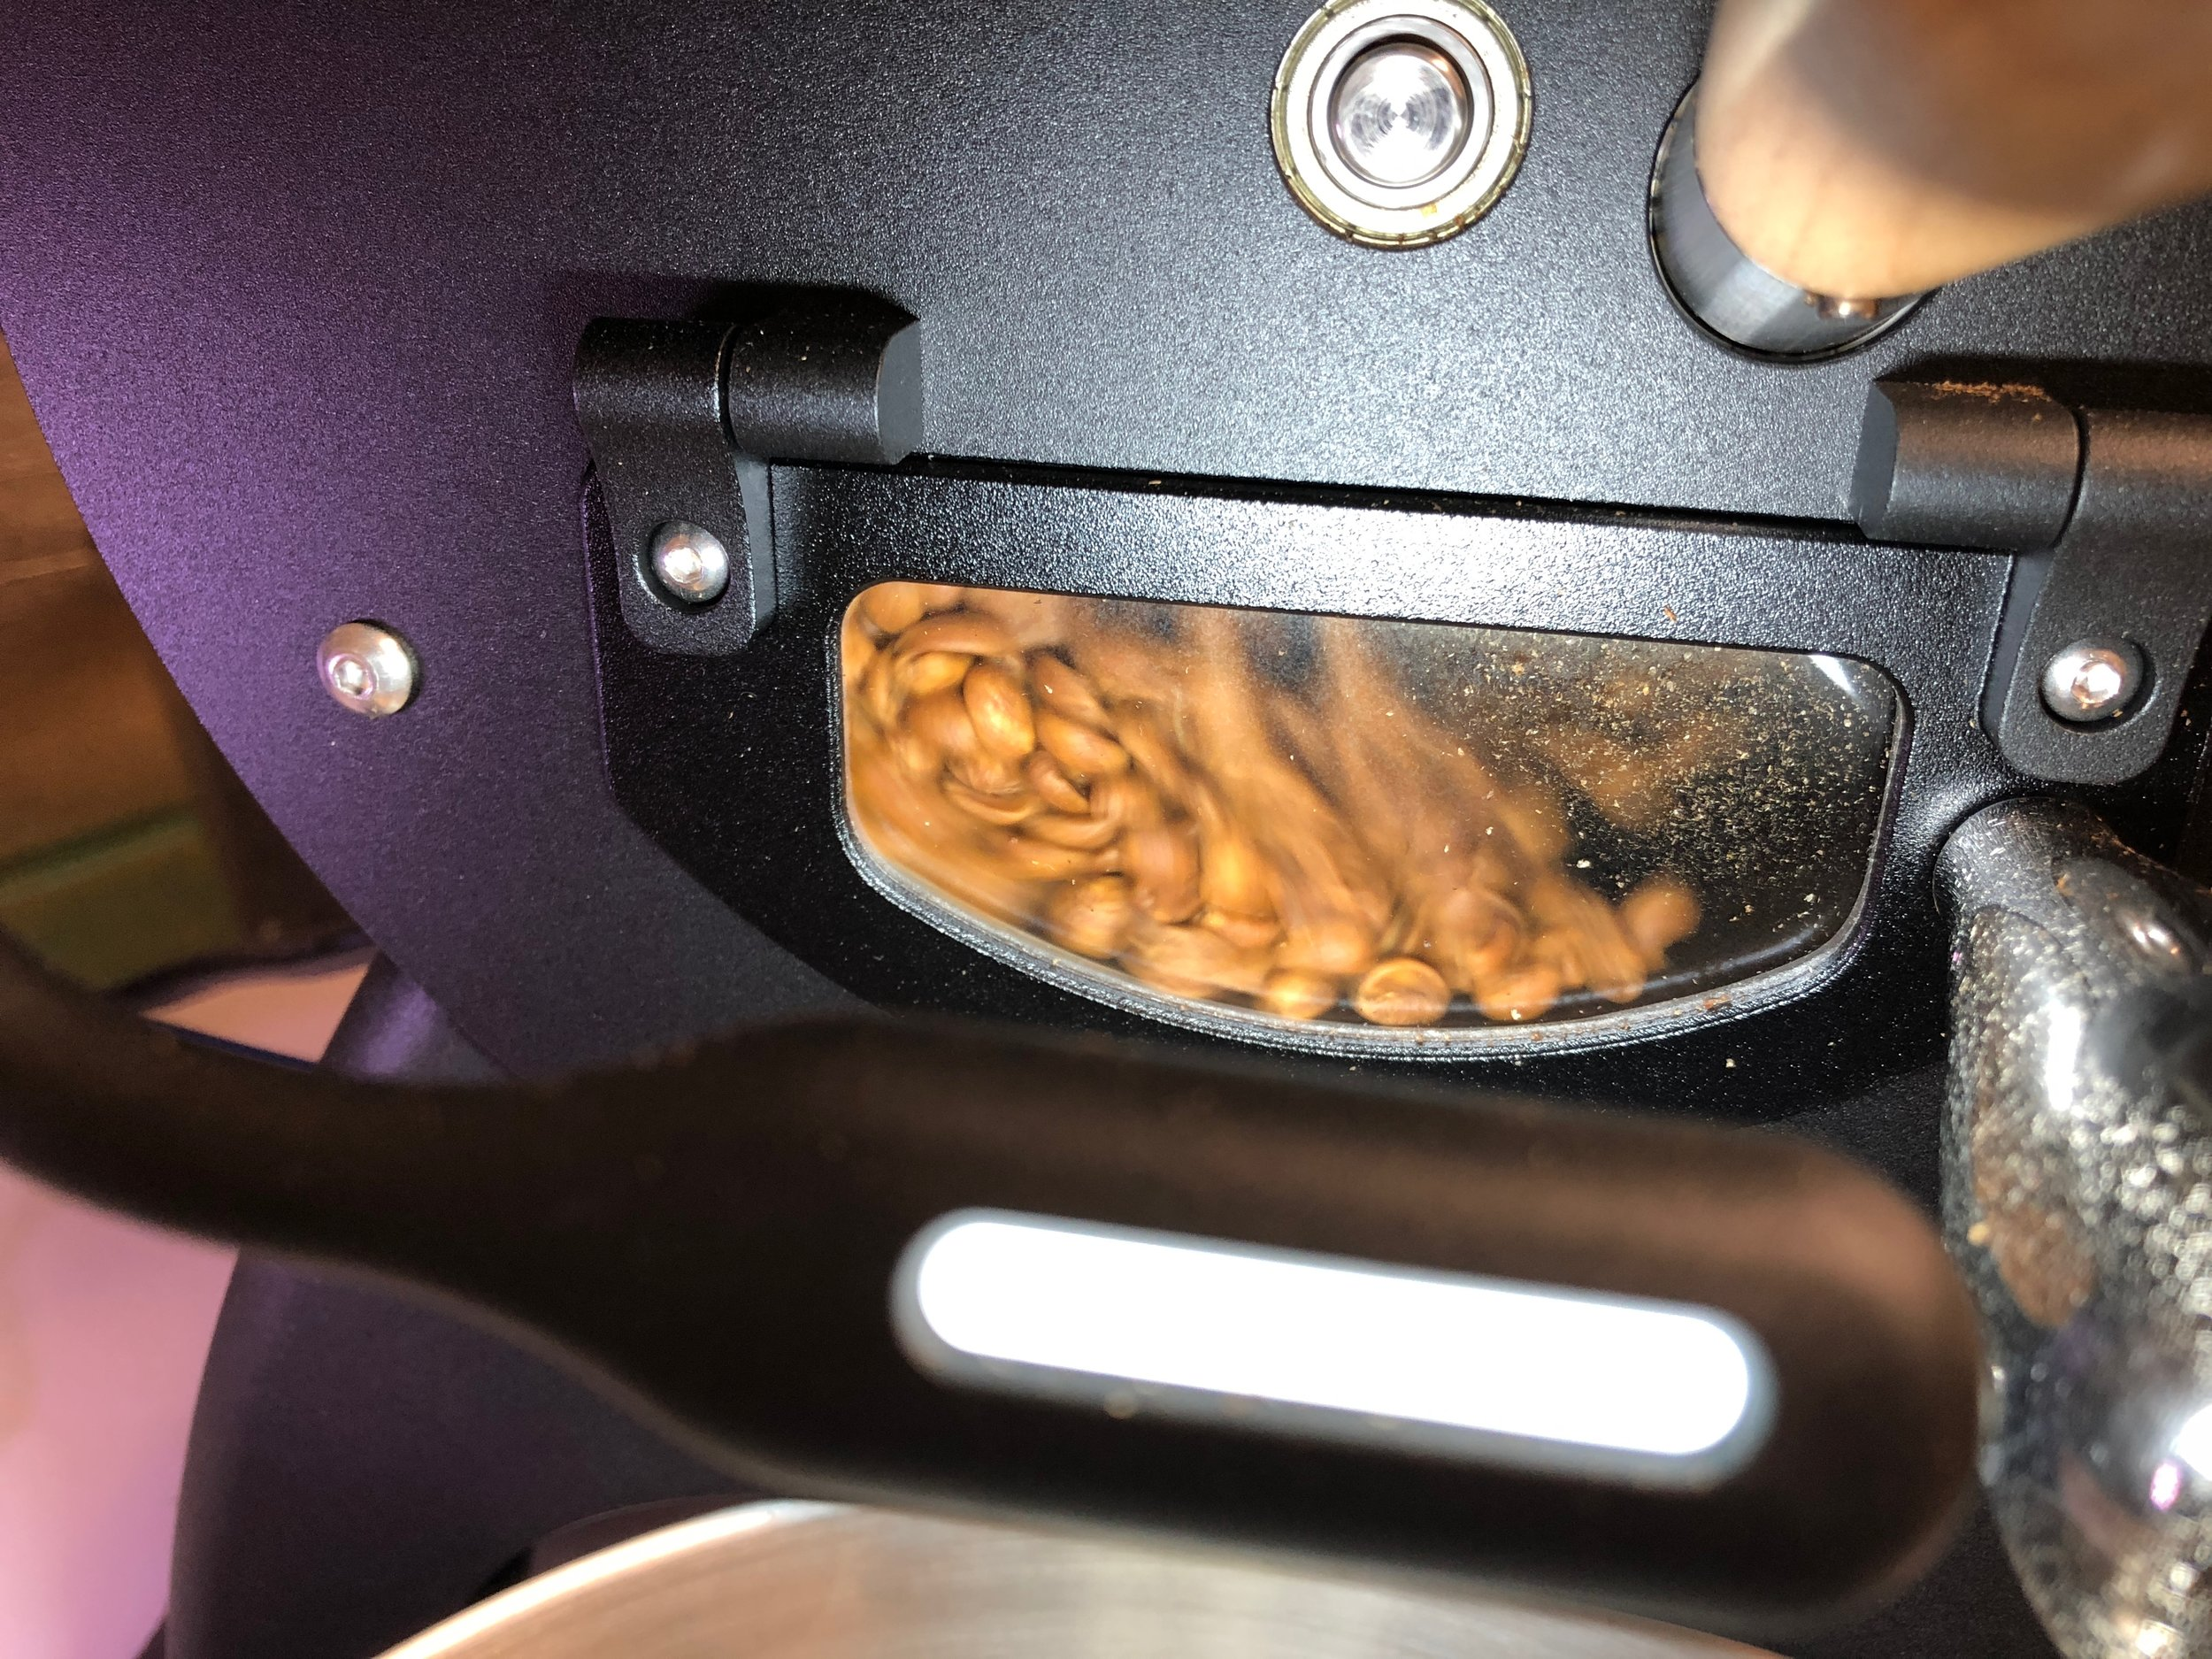 Beans roasting in my Aillio Bullet roaster